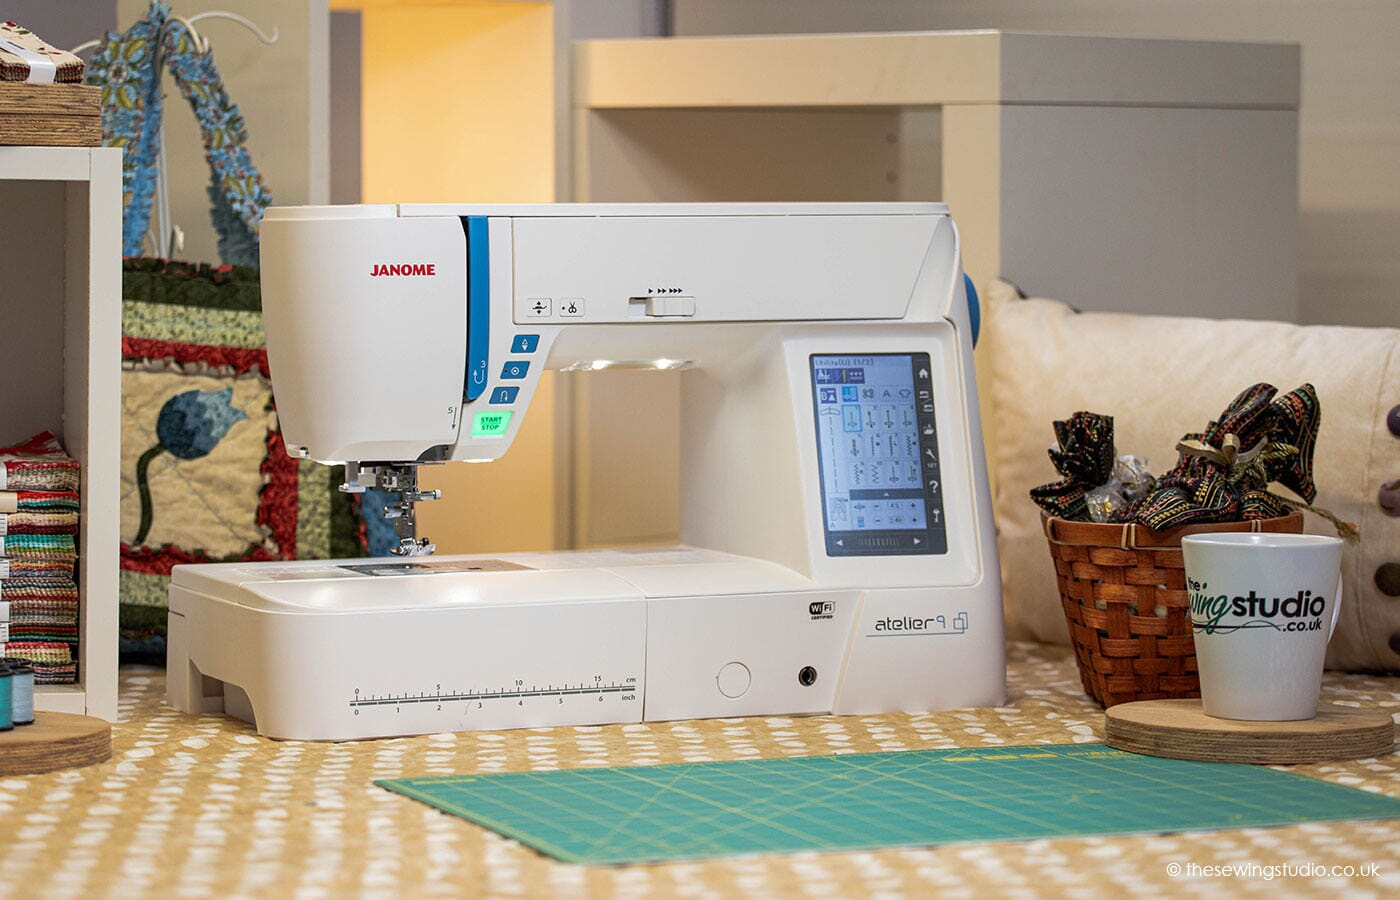 Janome Atelier 9 Sewing Machine in a Sewing Room